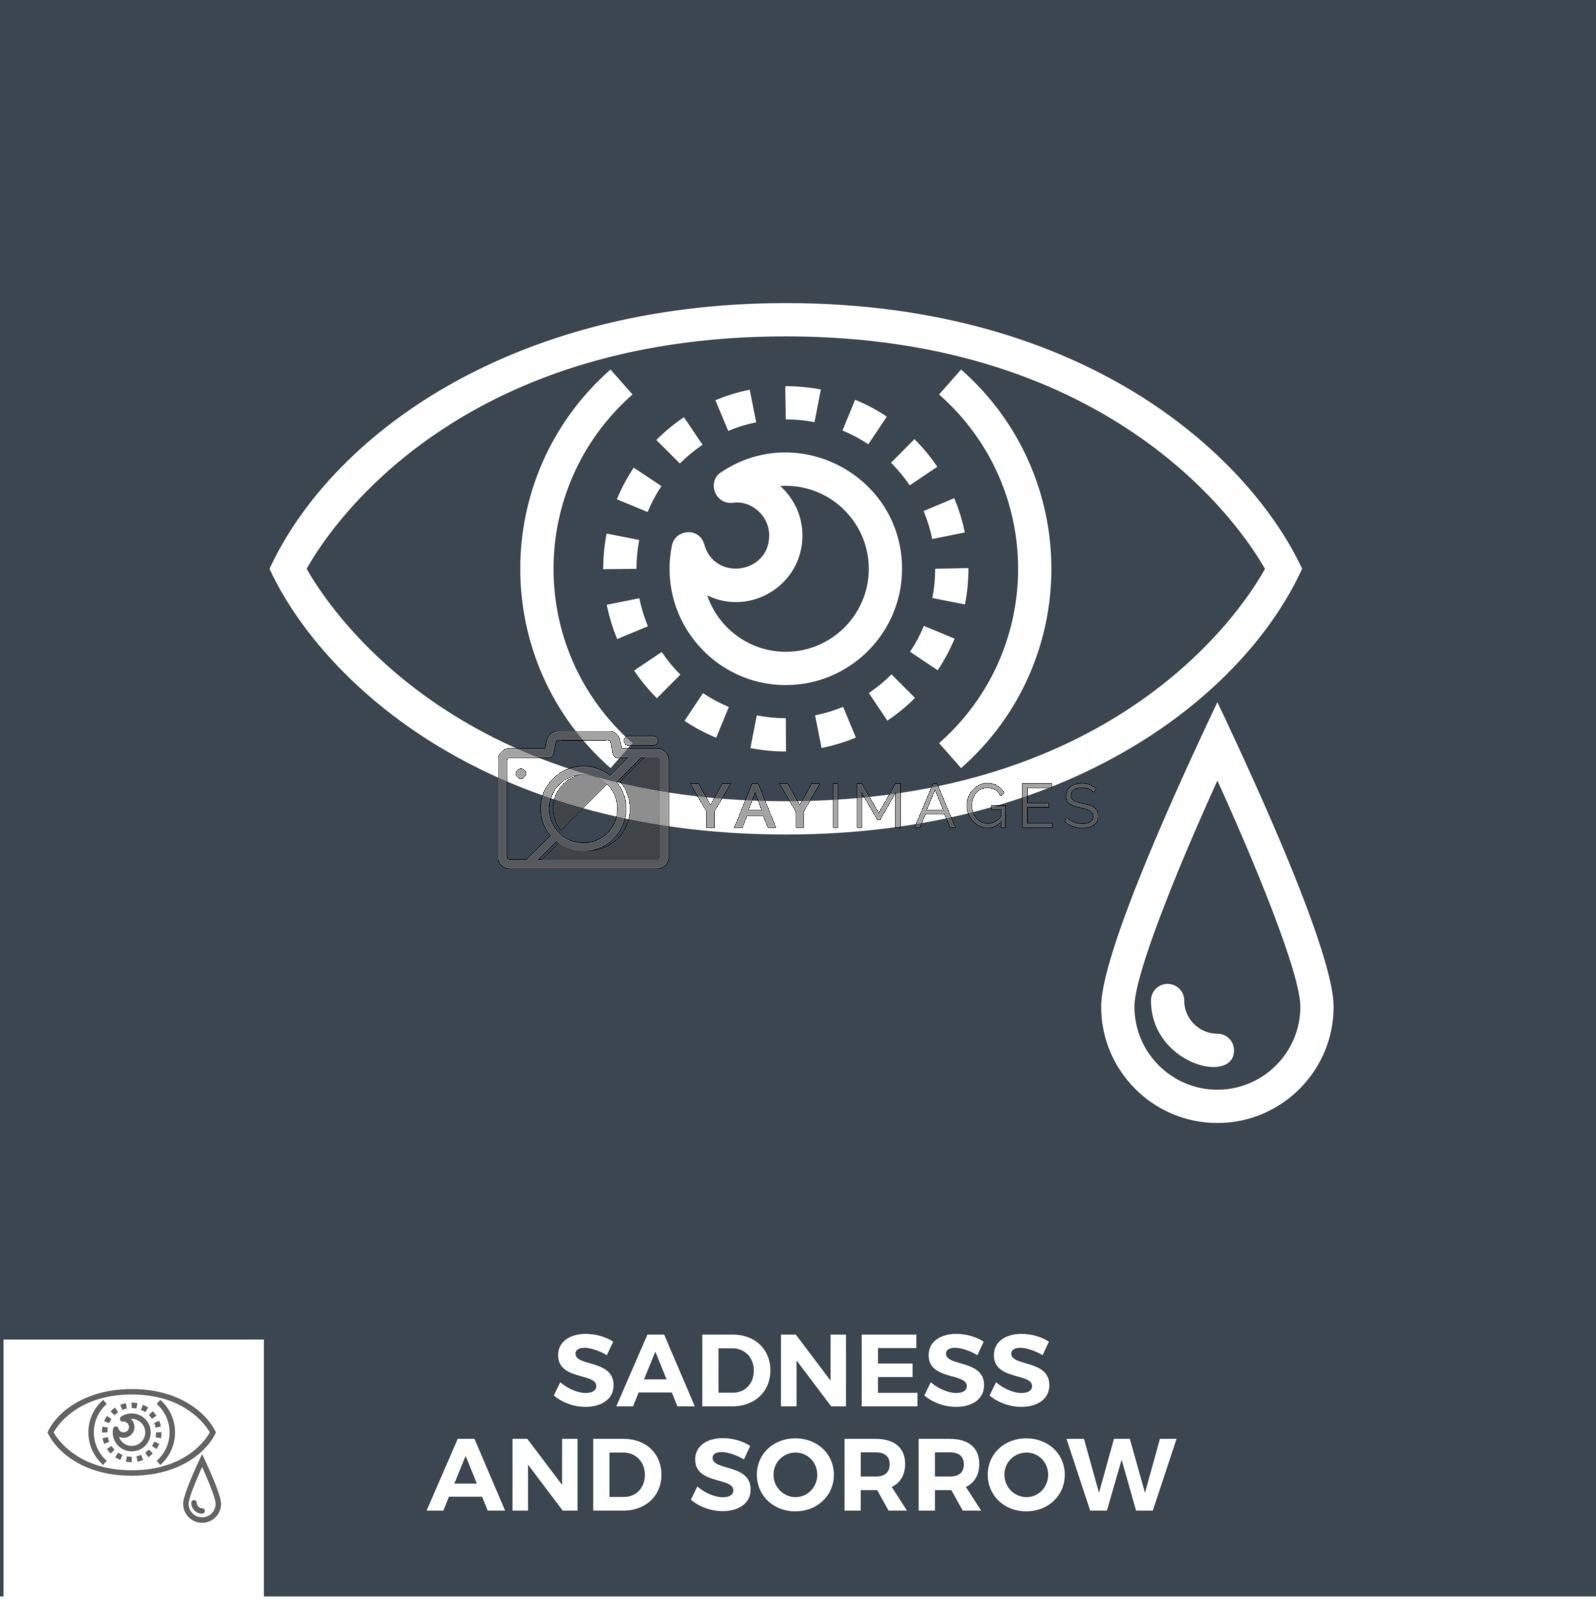 Sadness and Sorrow Thin Line Vector Icon Isolated on the Black Background.